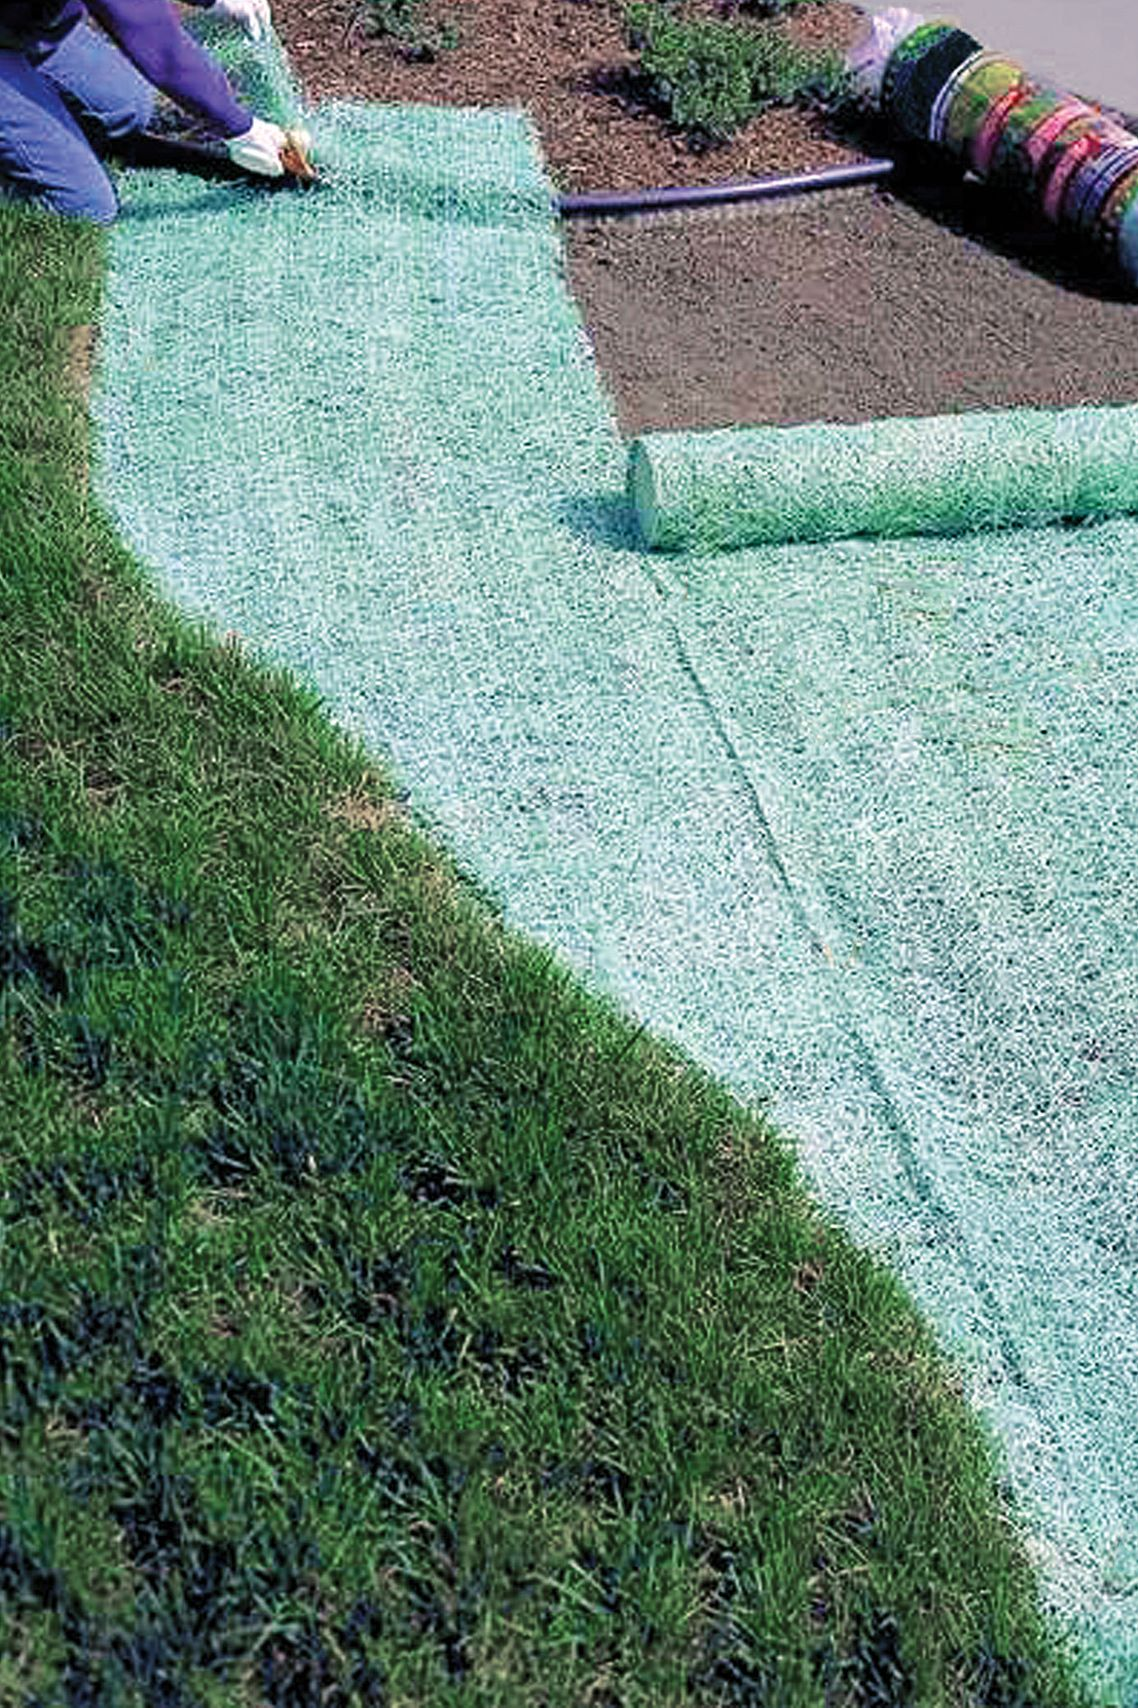 Well With A Quickgr Pro Erosion Control Blanket You Can Cover 140 Total Square Feet Crisp Green Gr Embedded Seed